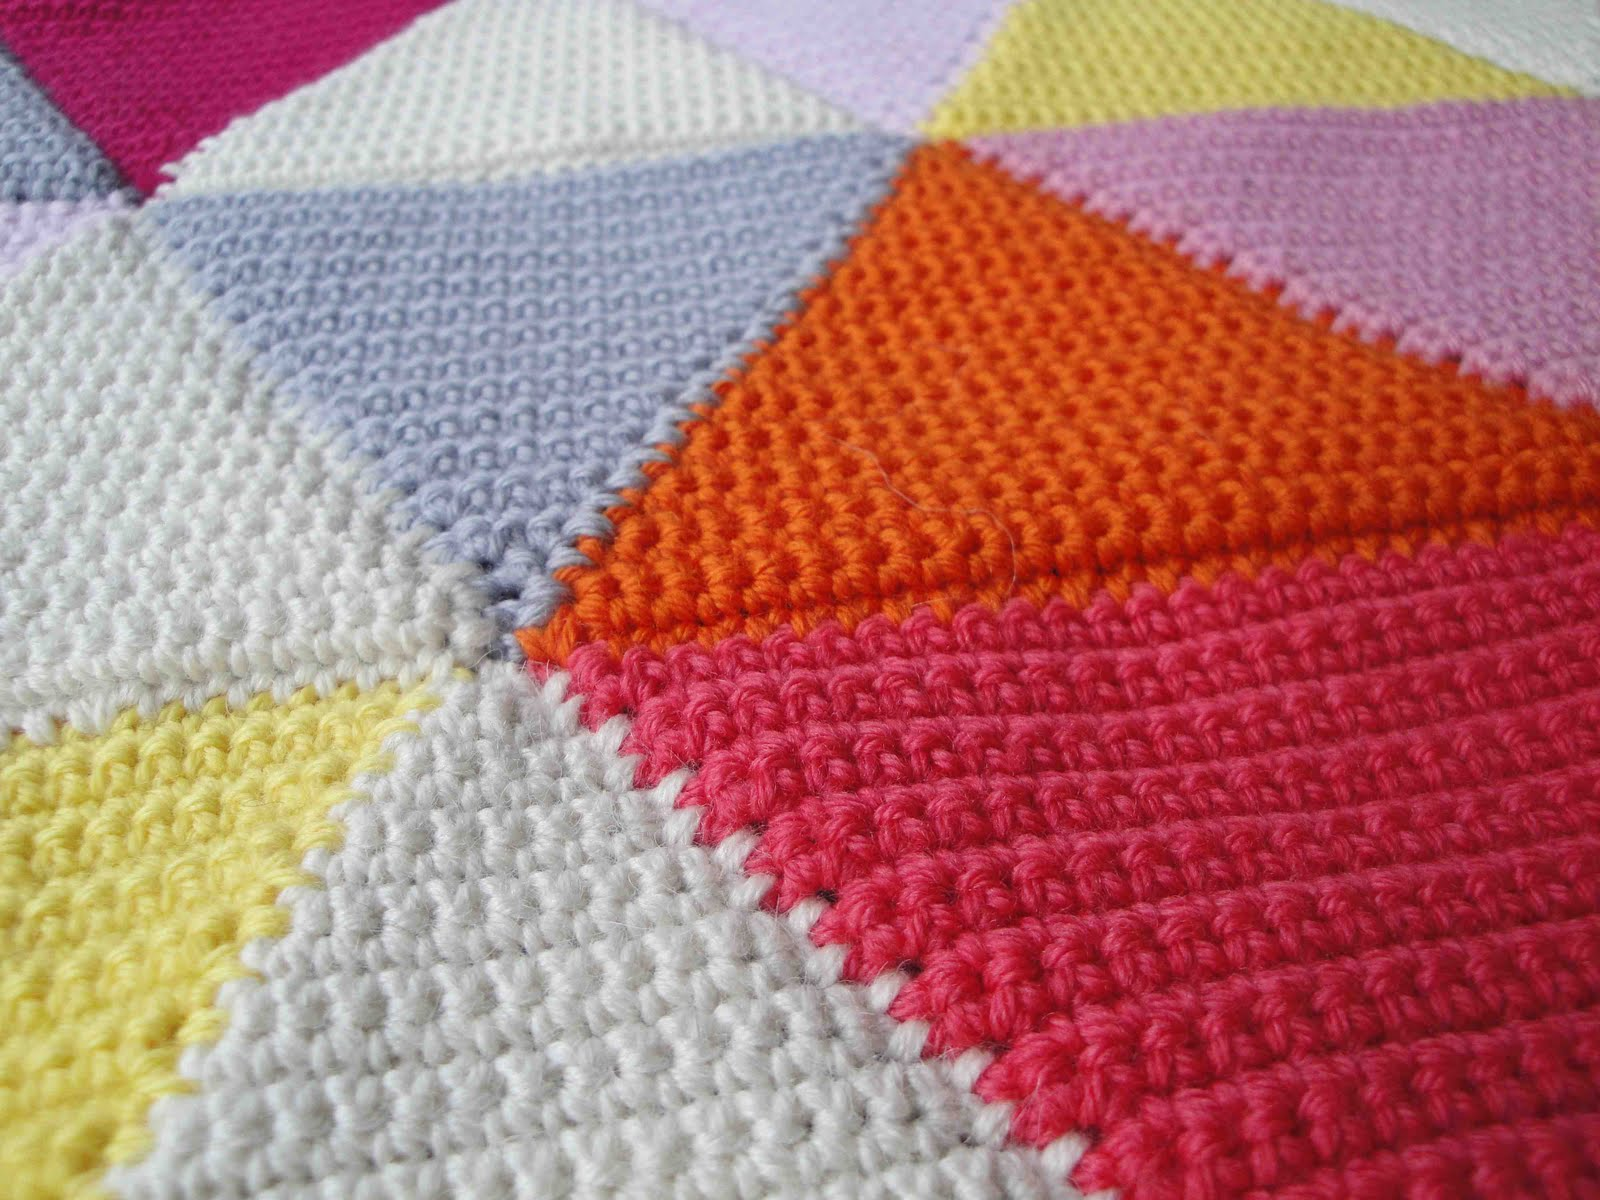 Crochet Triangle : As you can see, there are more triangle cushions being crocheted in my ...